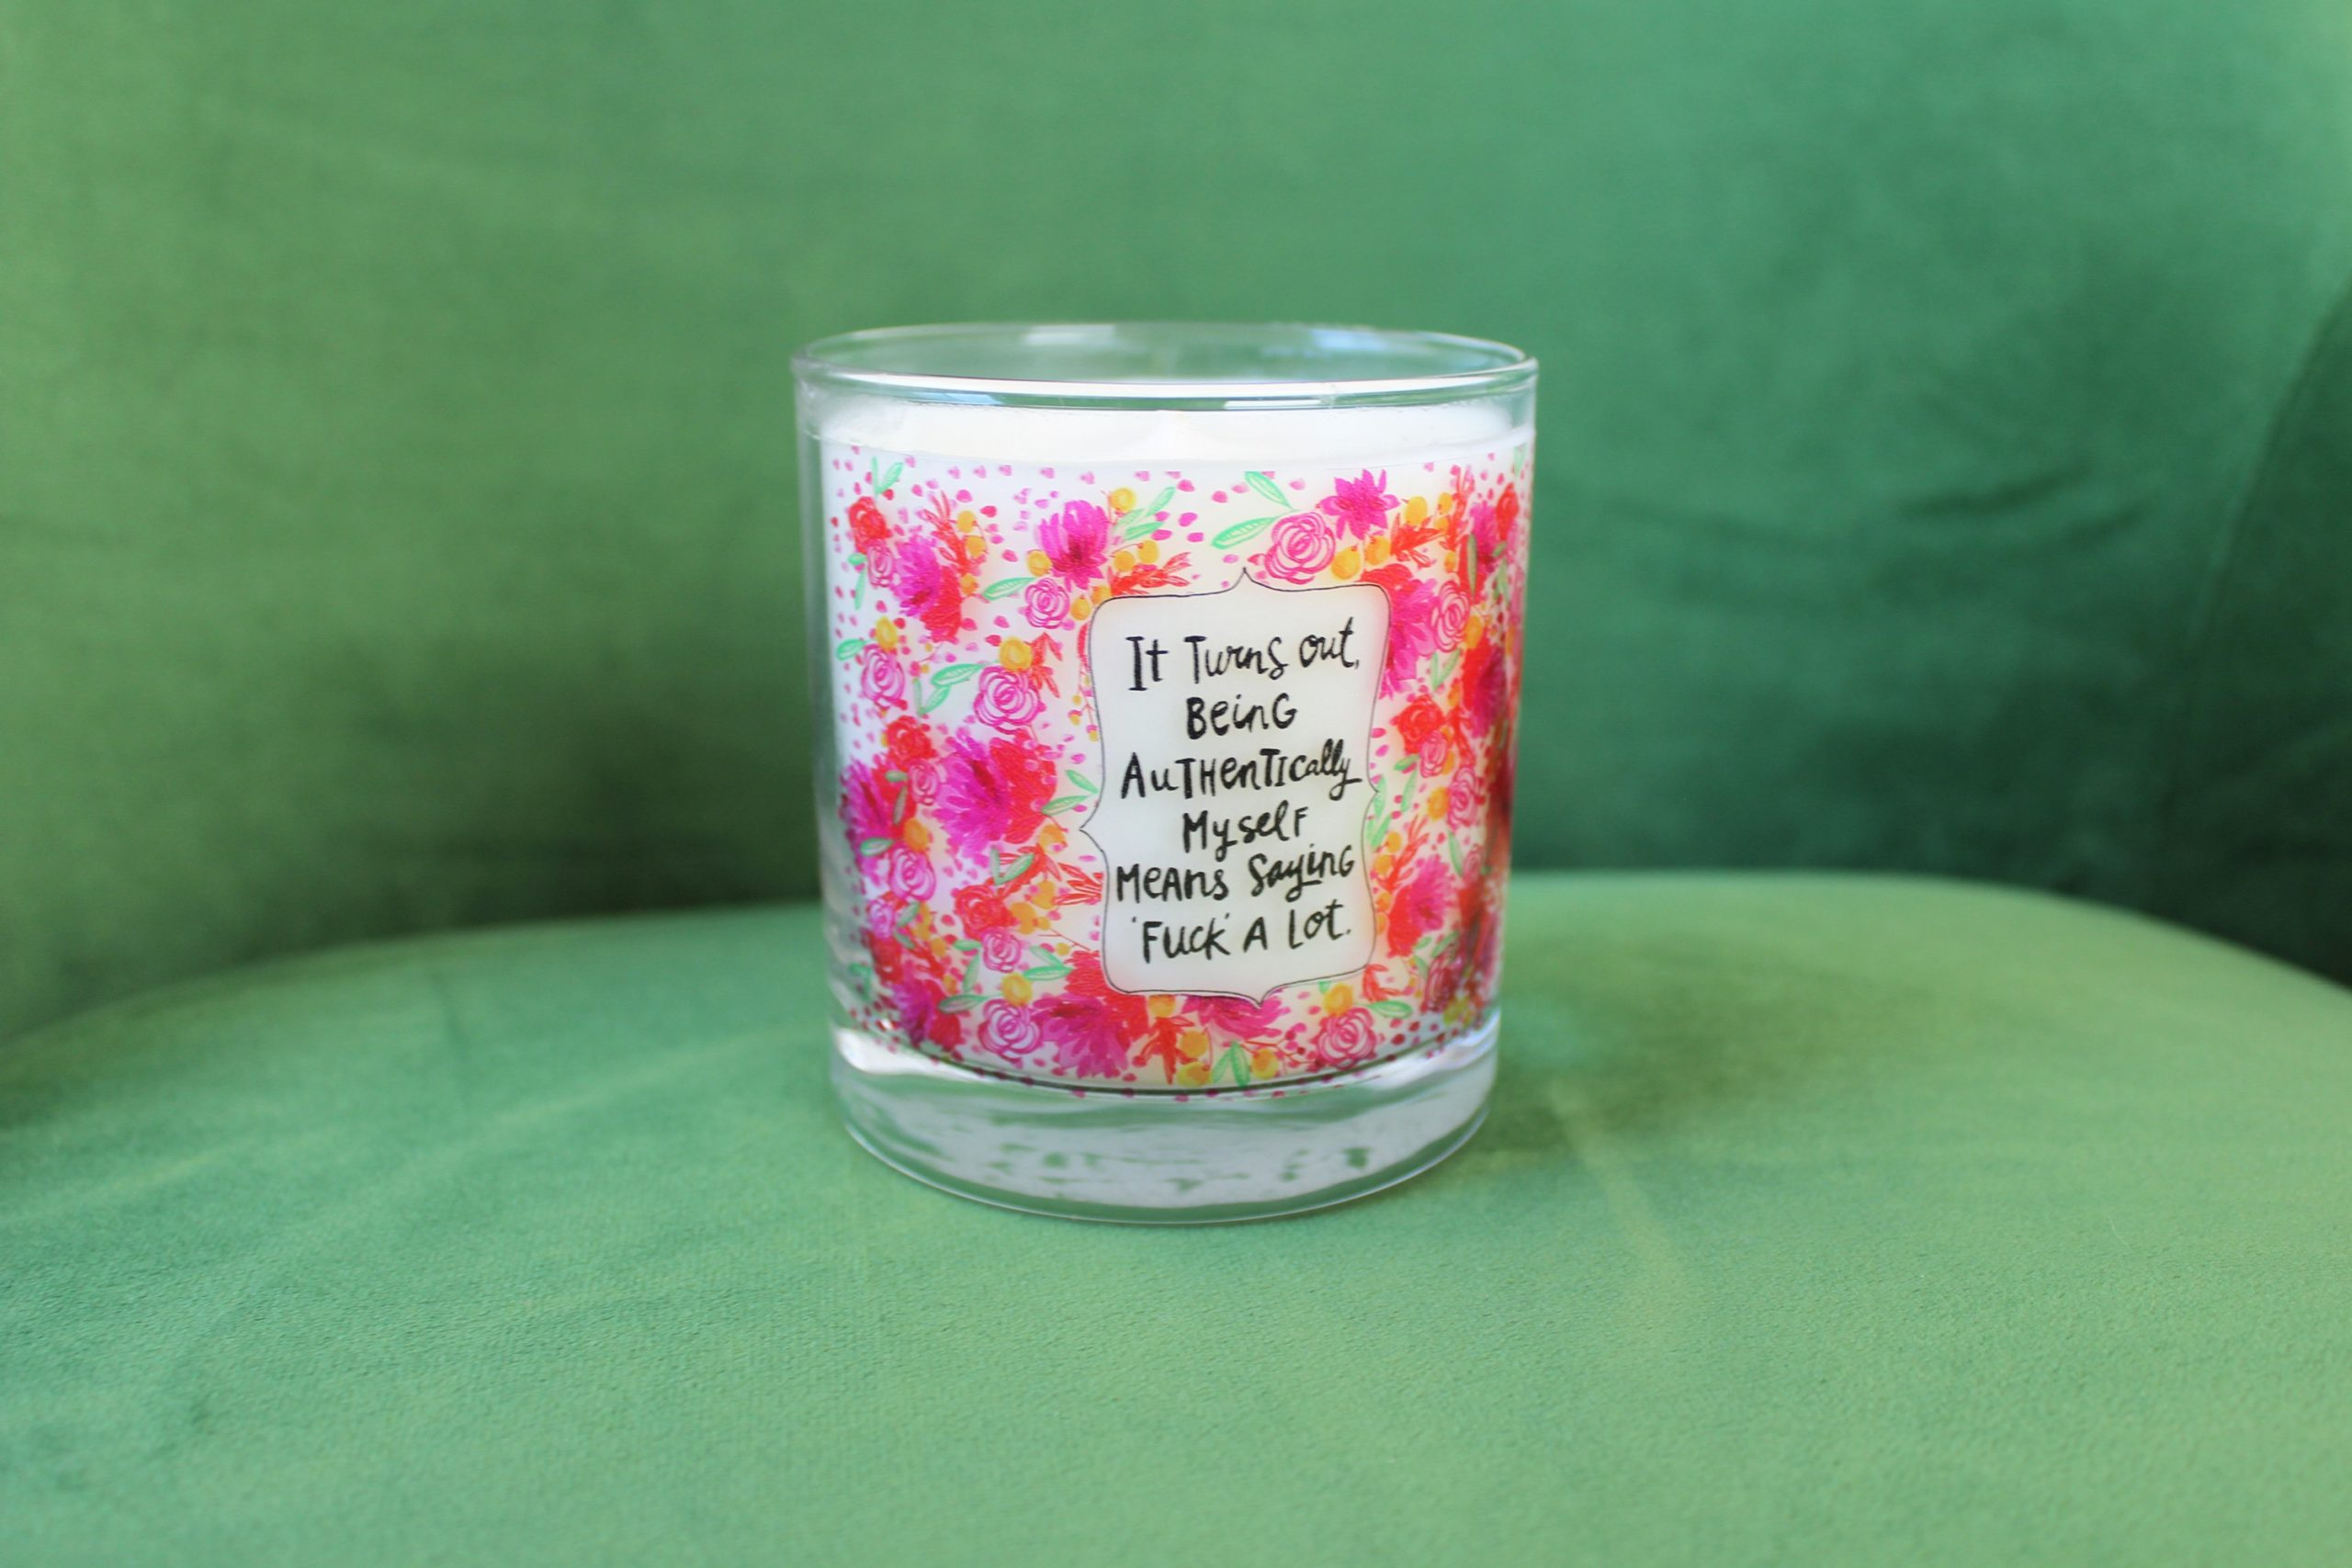 Authentically Myself Candle